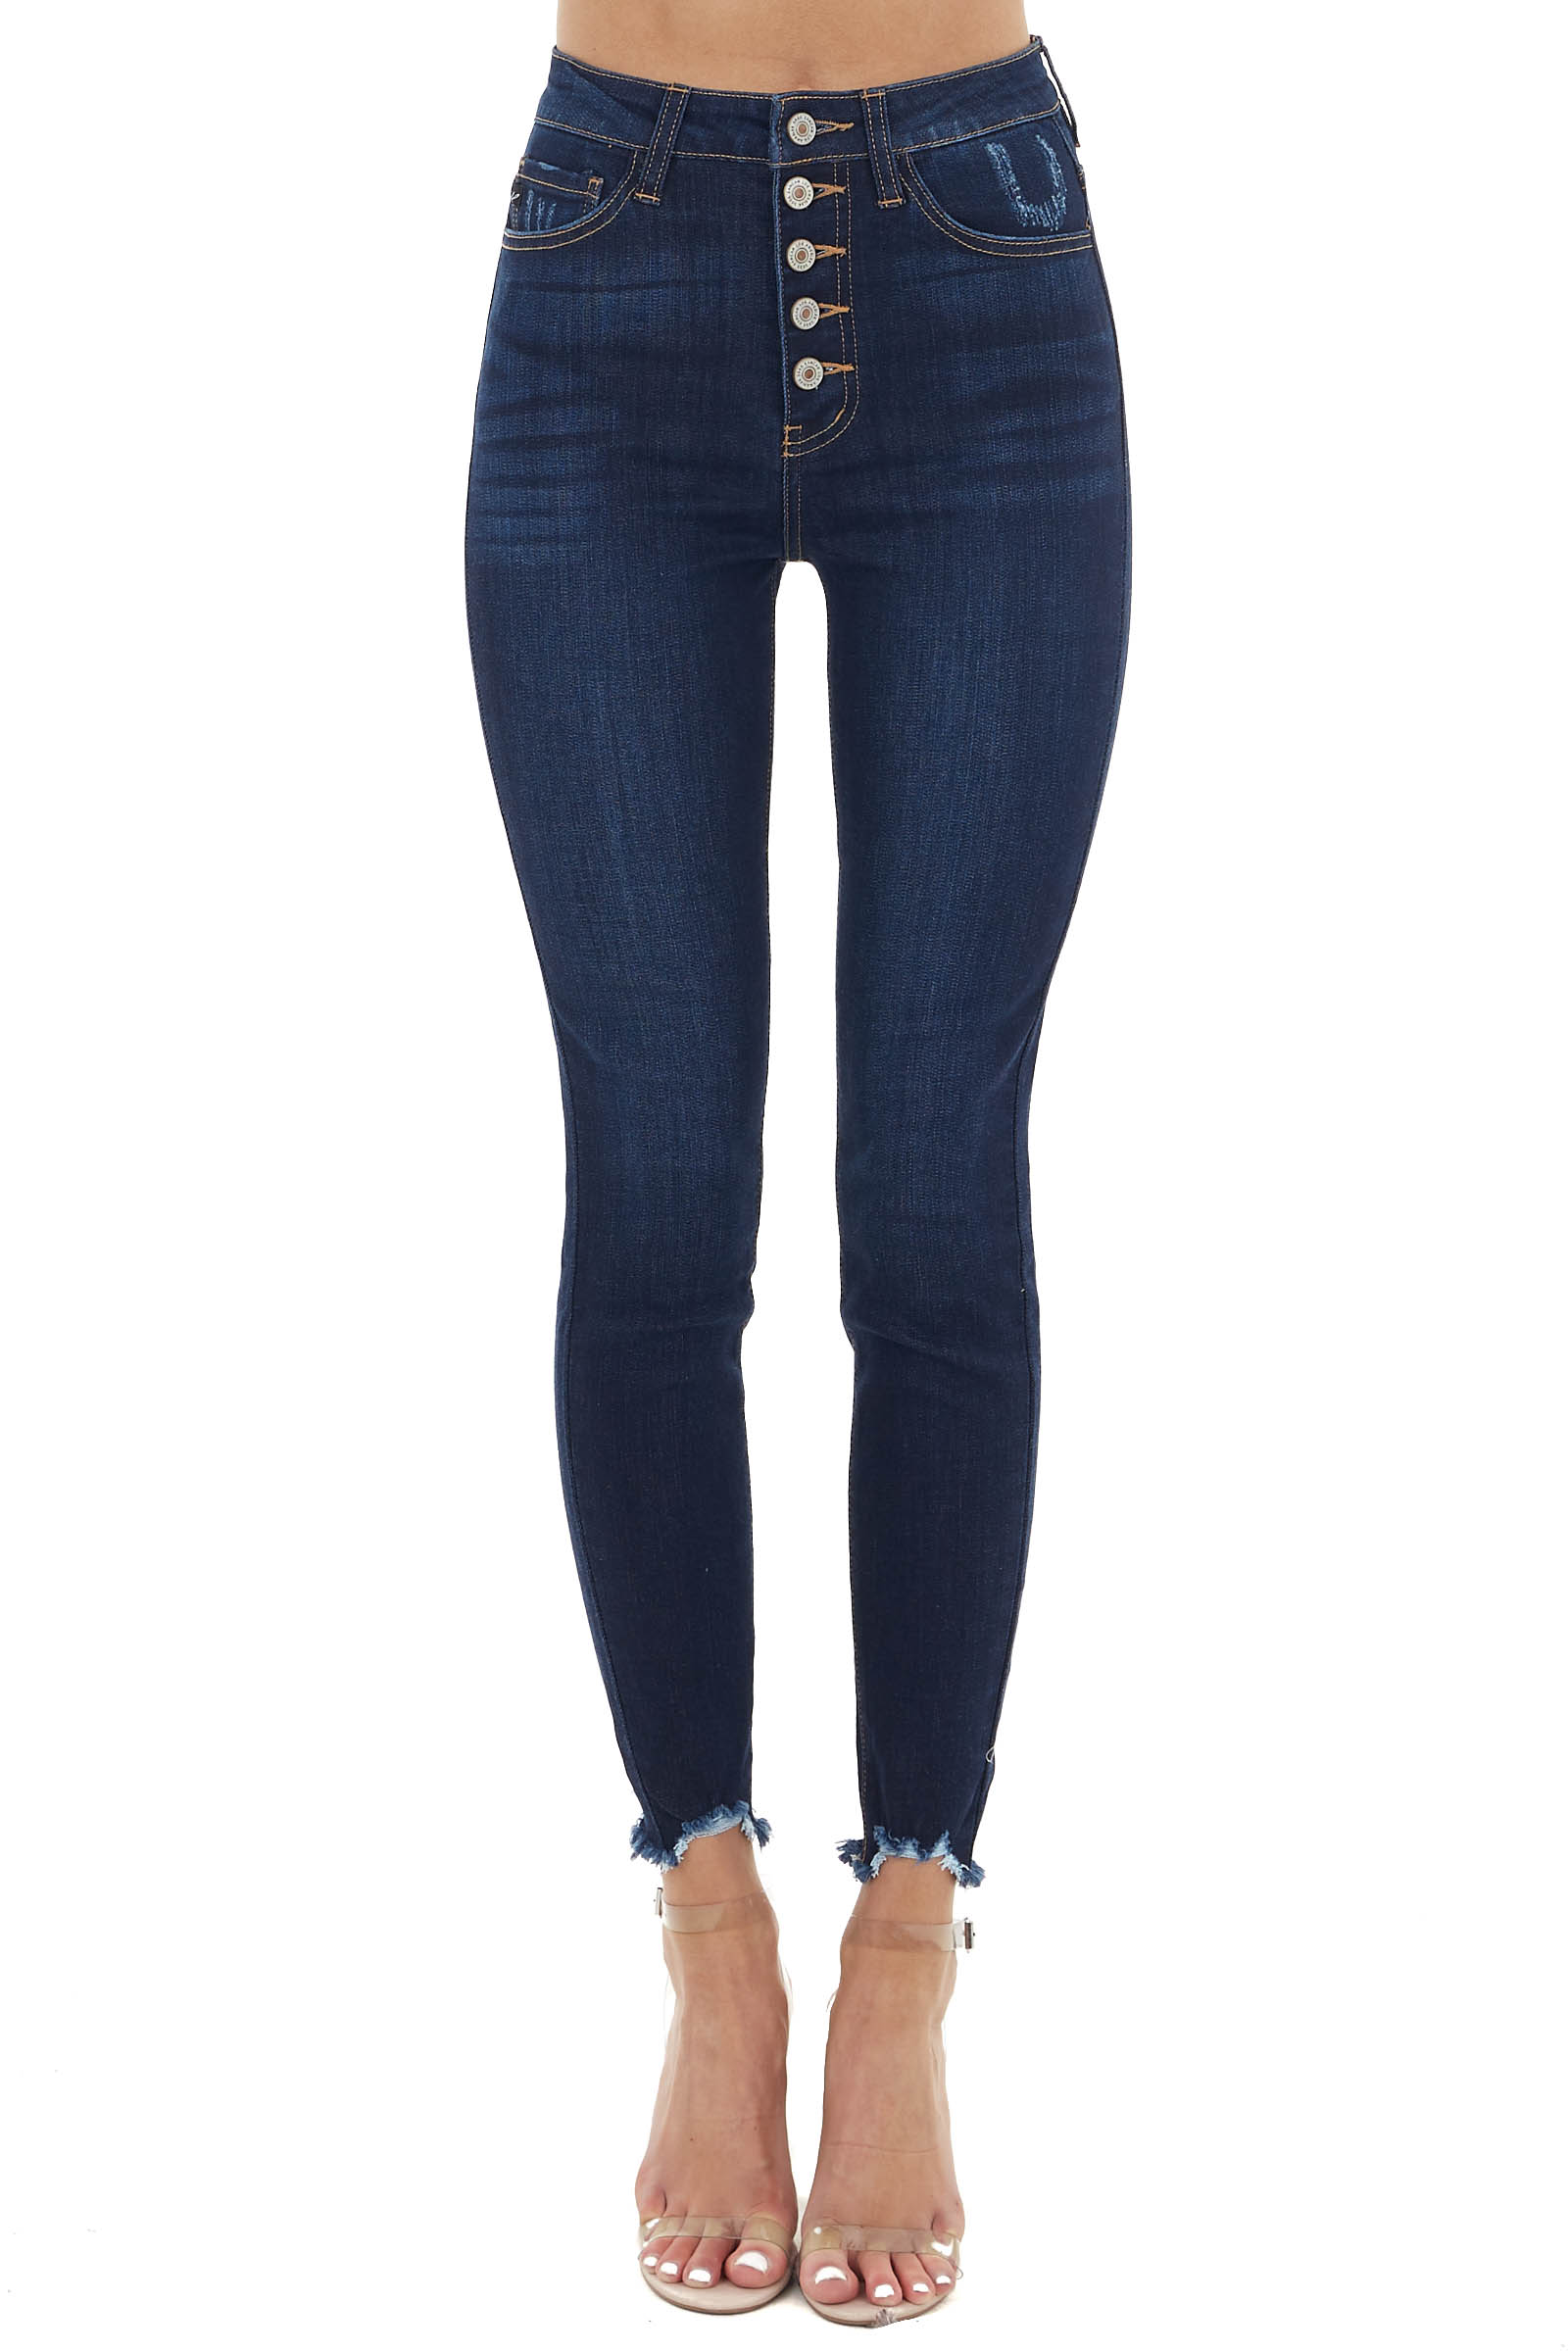 Dark Wash High Waisted Button Up Jeans with Raw Cuffs